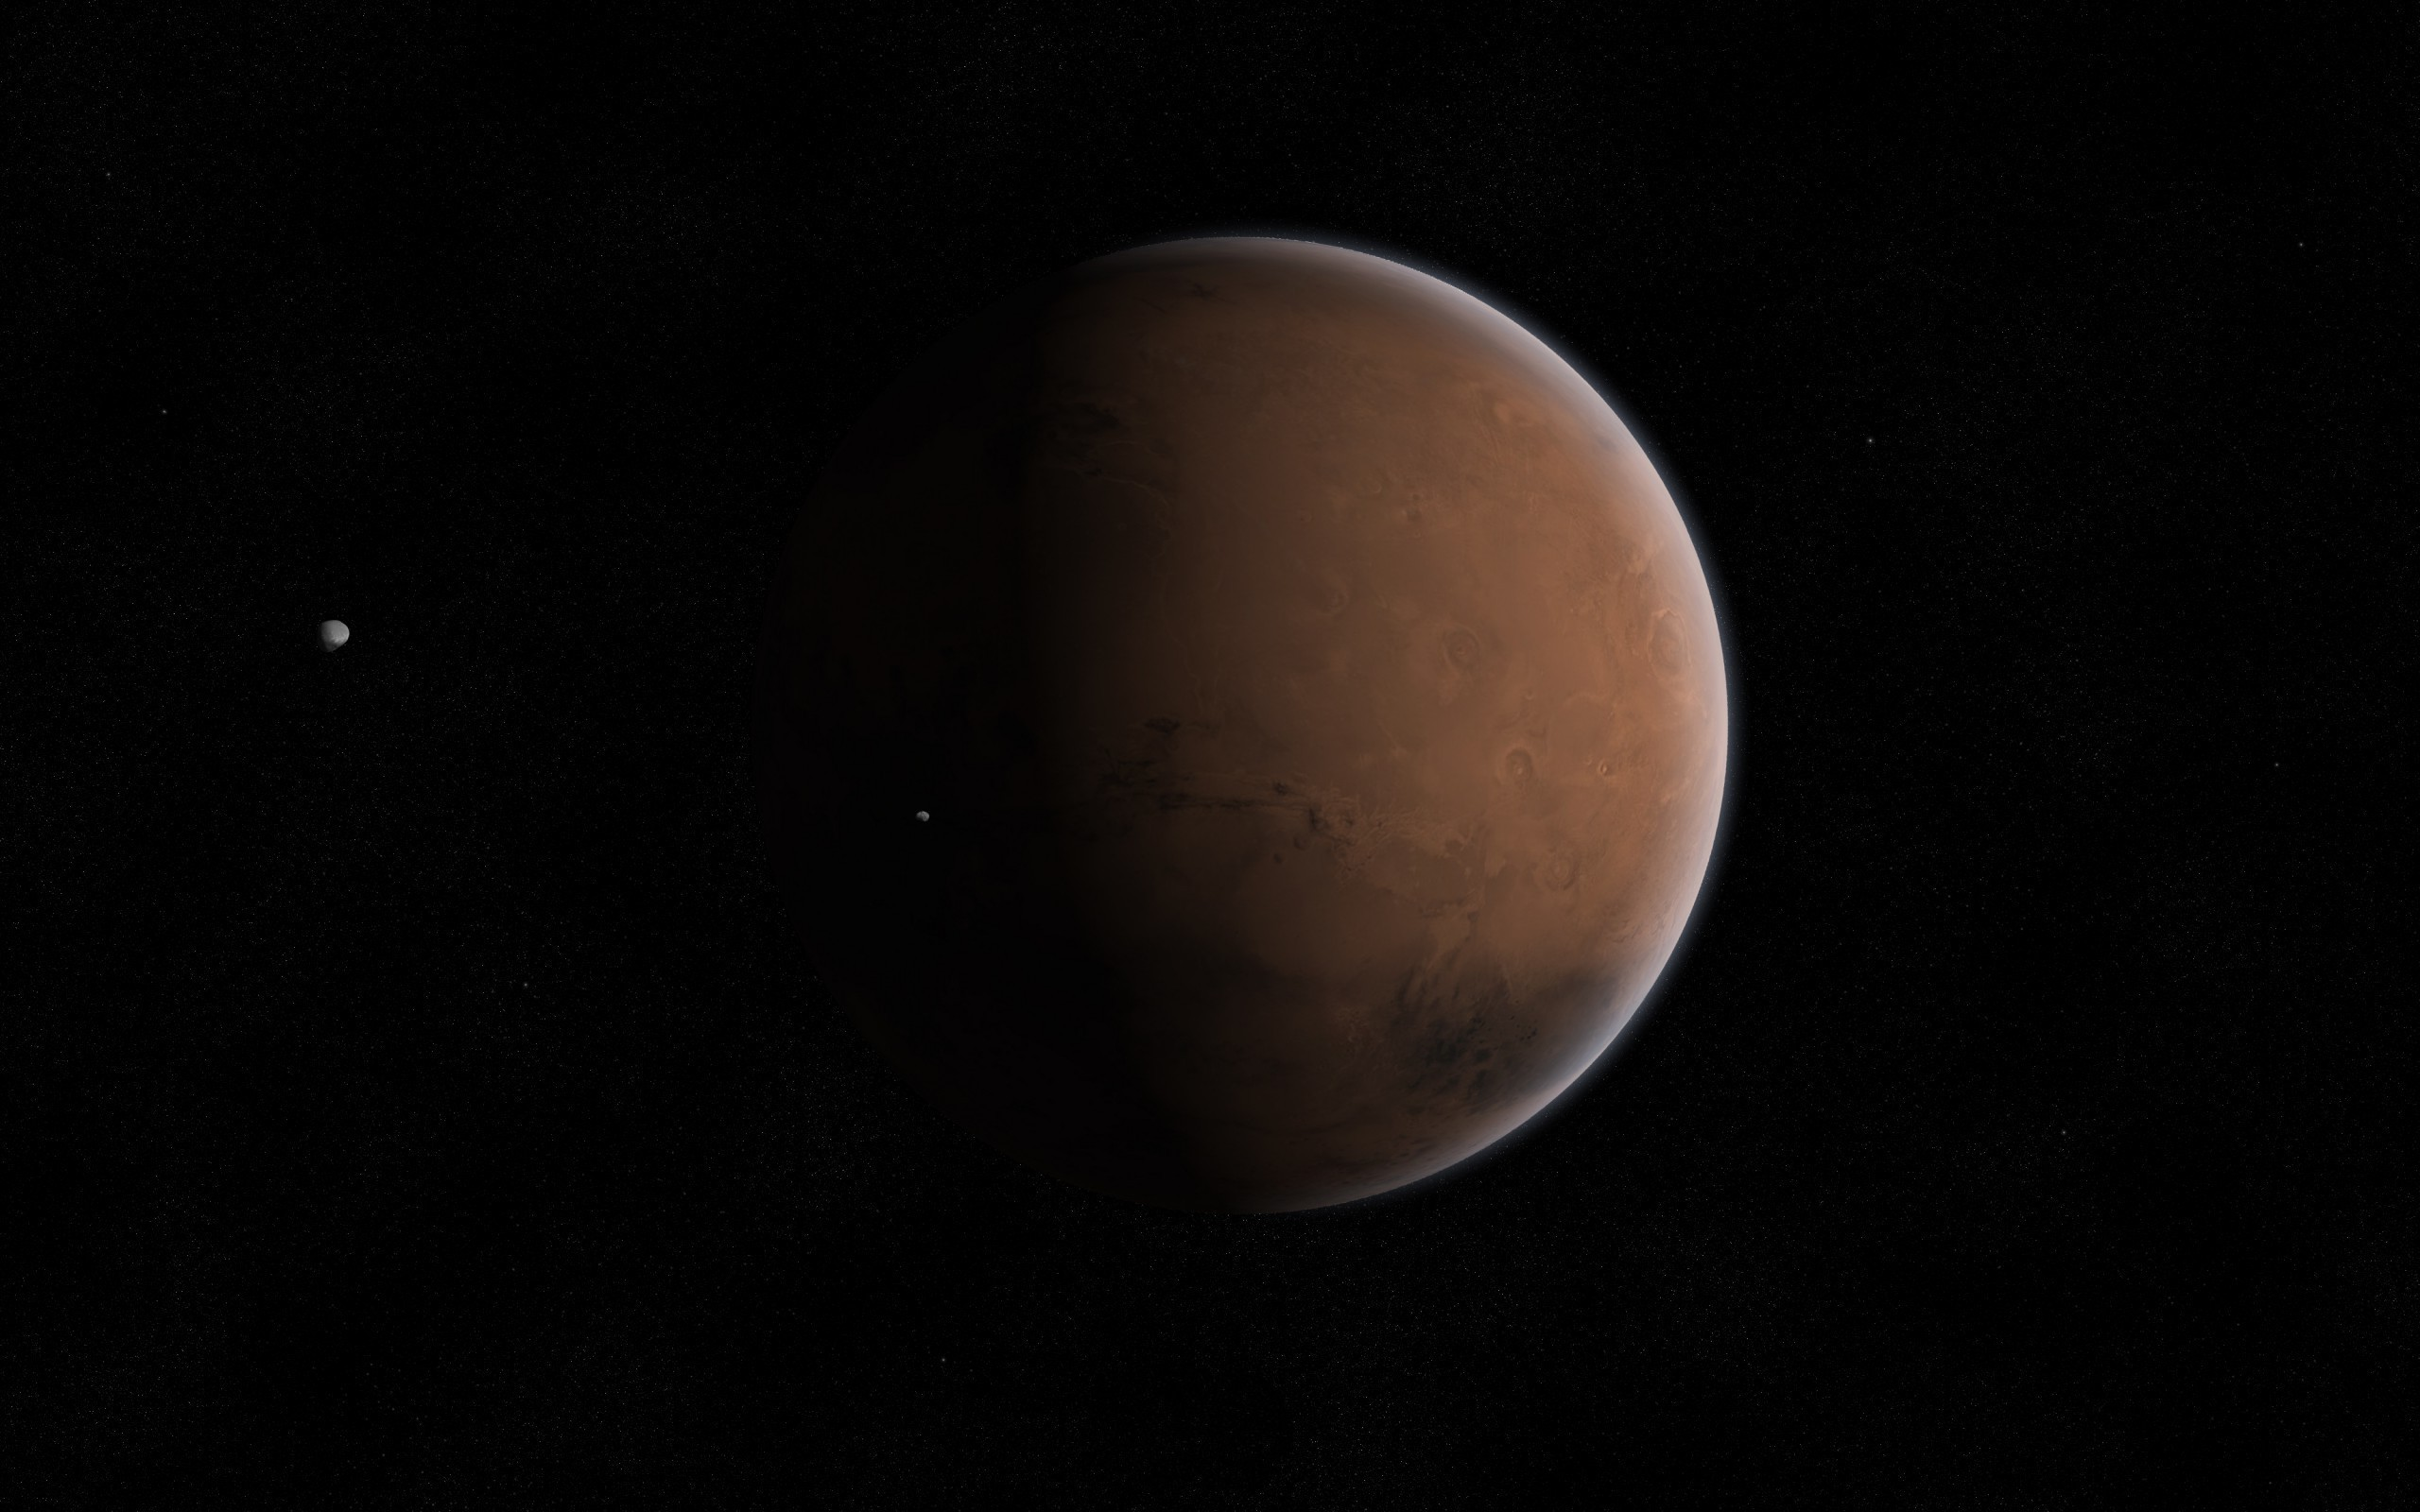 mars space widescreen wallpaper 49096